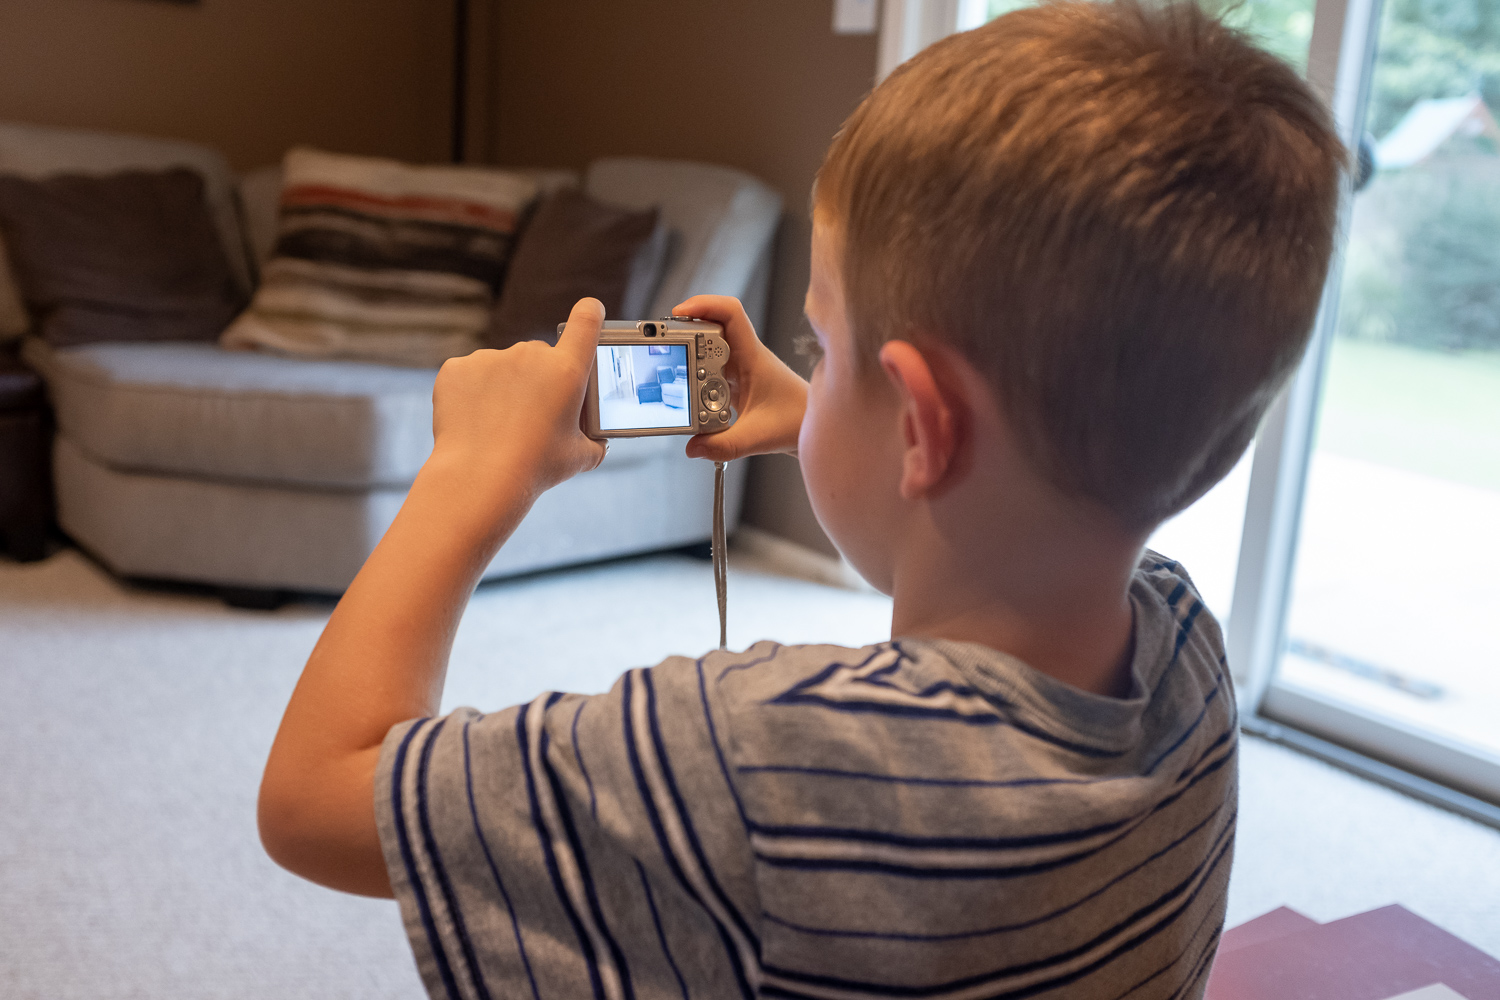 What you need to know about choosing cameras for kids.